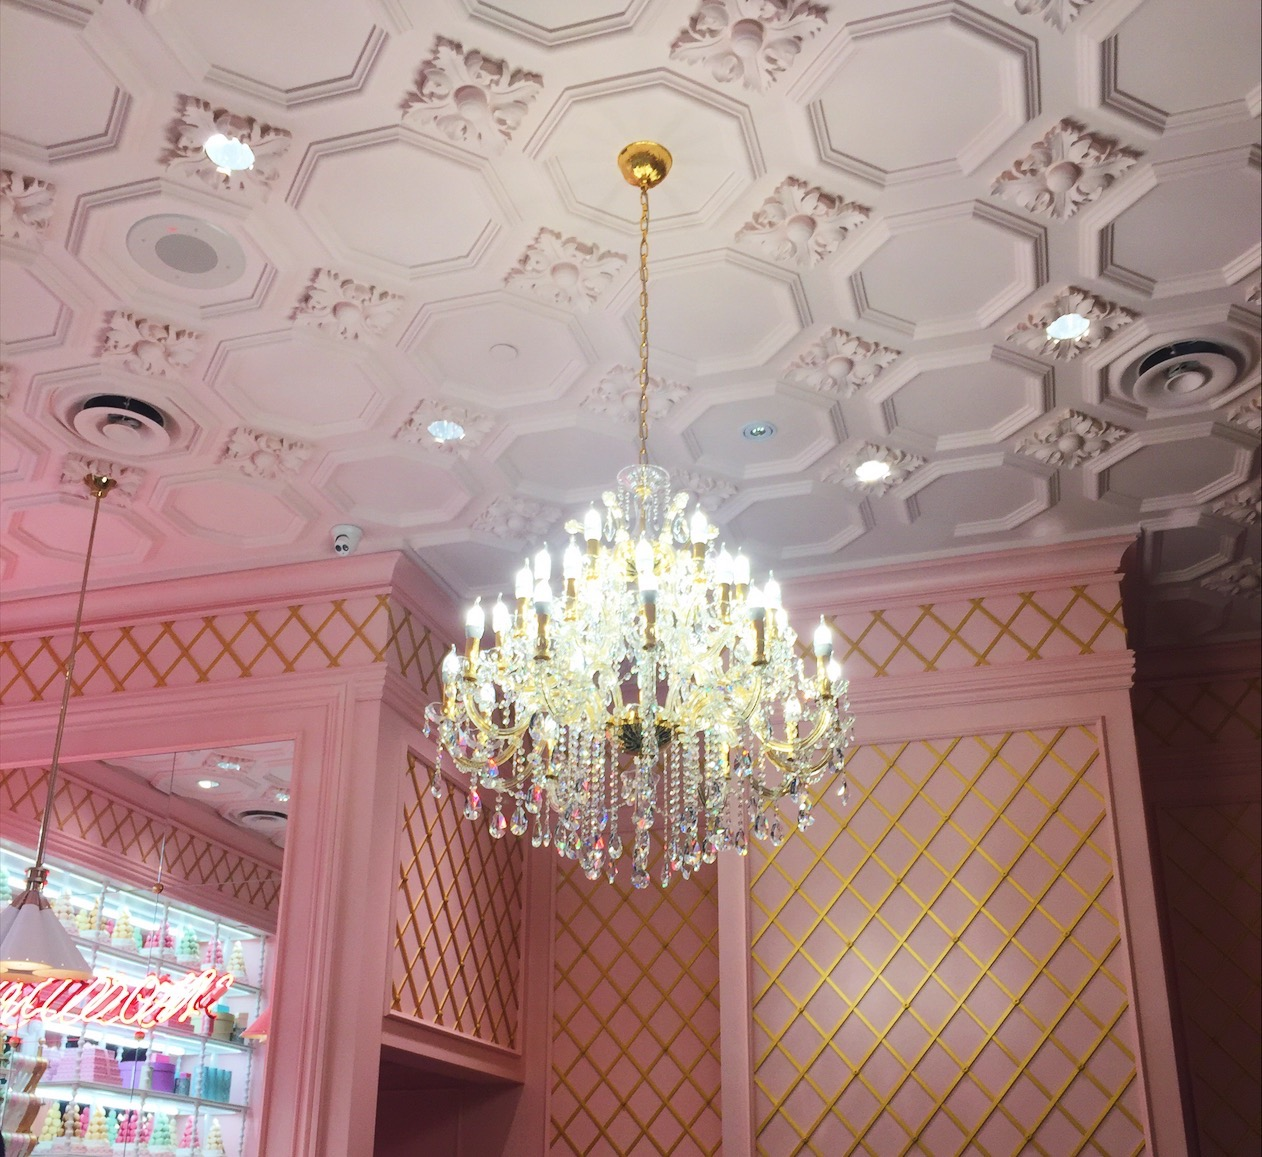 Chandelier in Ladurée Boutique and Tea Salon at Yorkdale Shopping Centre